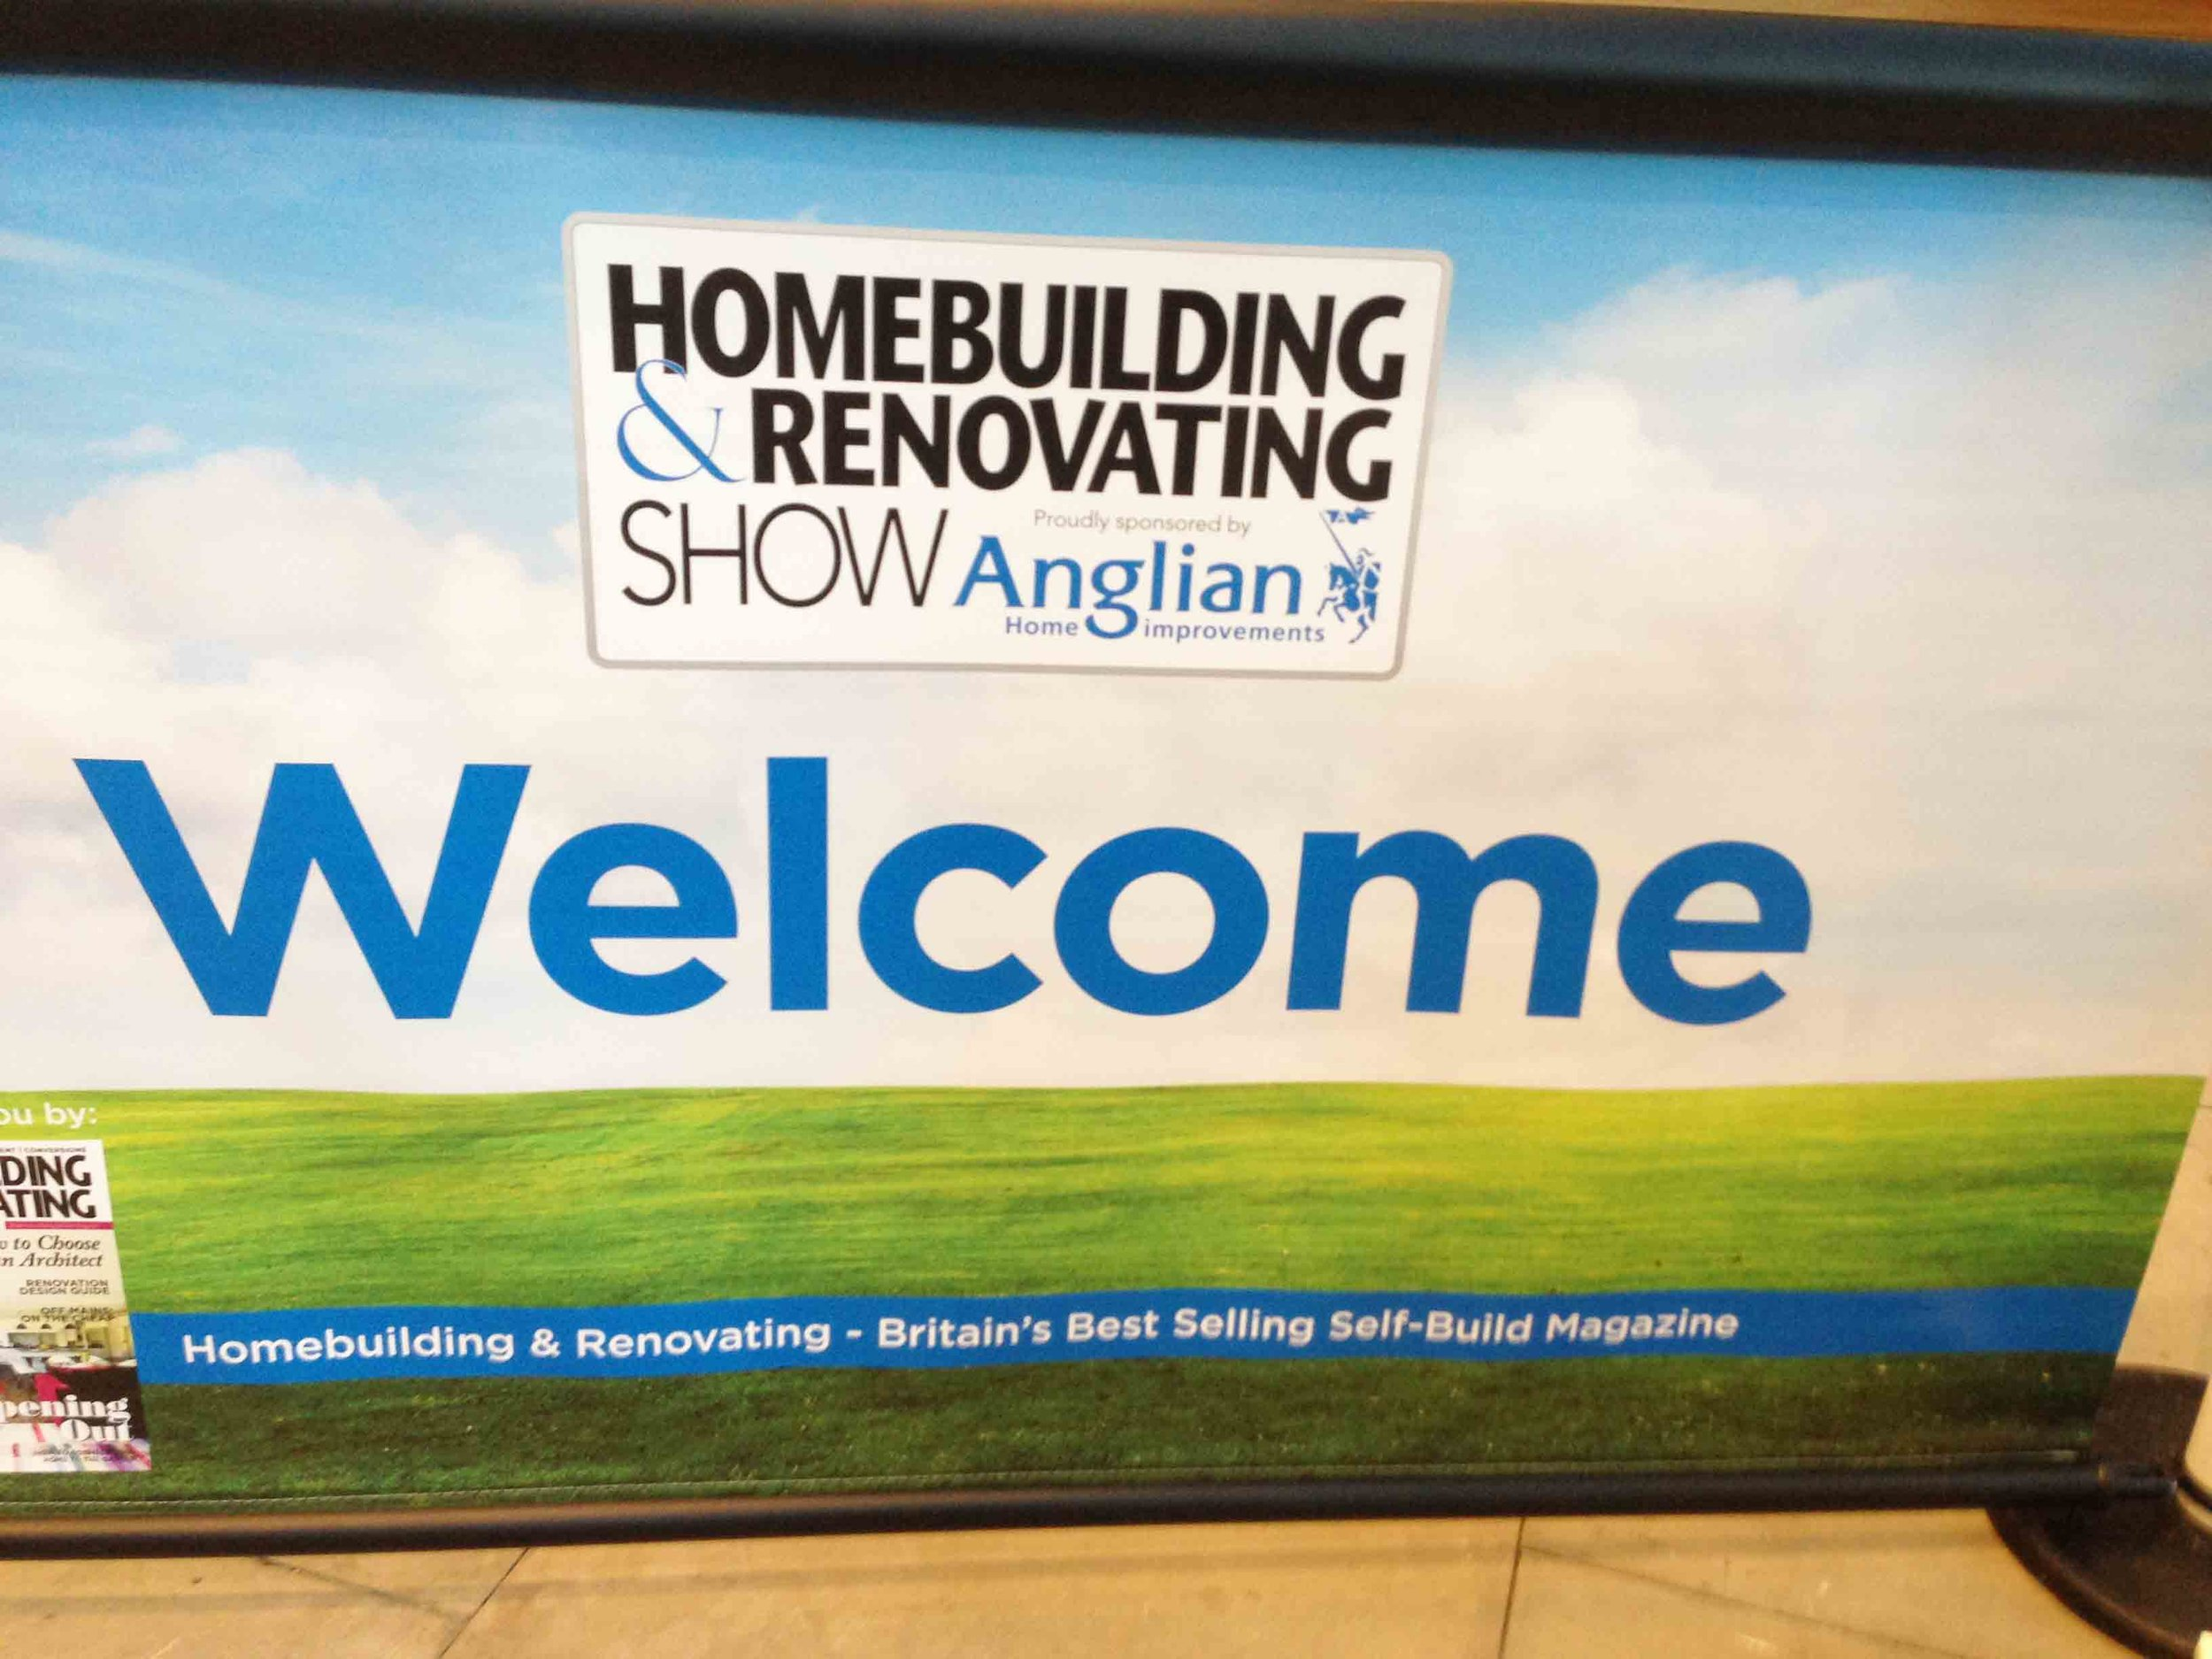 Homebuilding-and-Renovating-Show.jpg